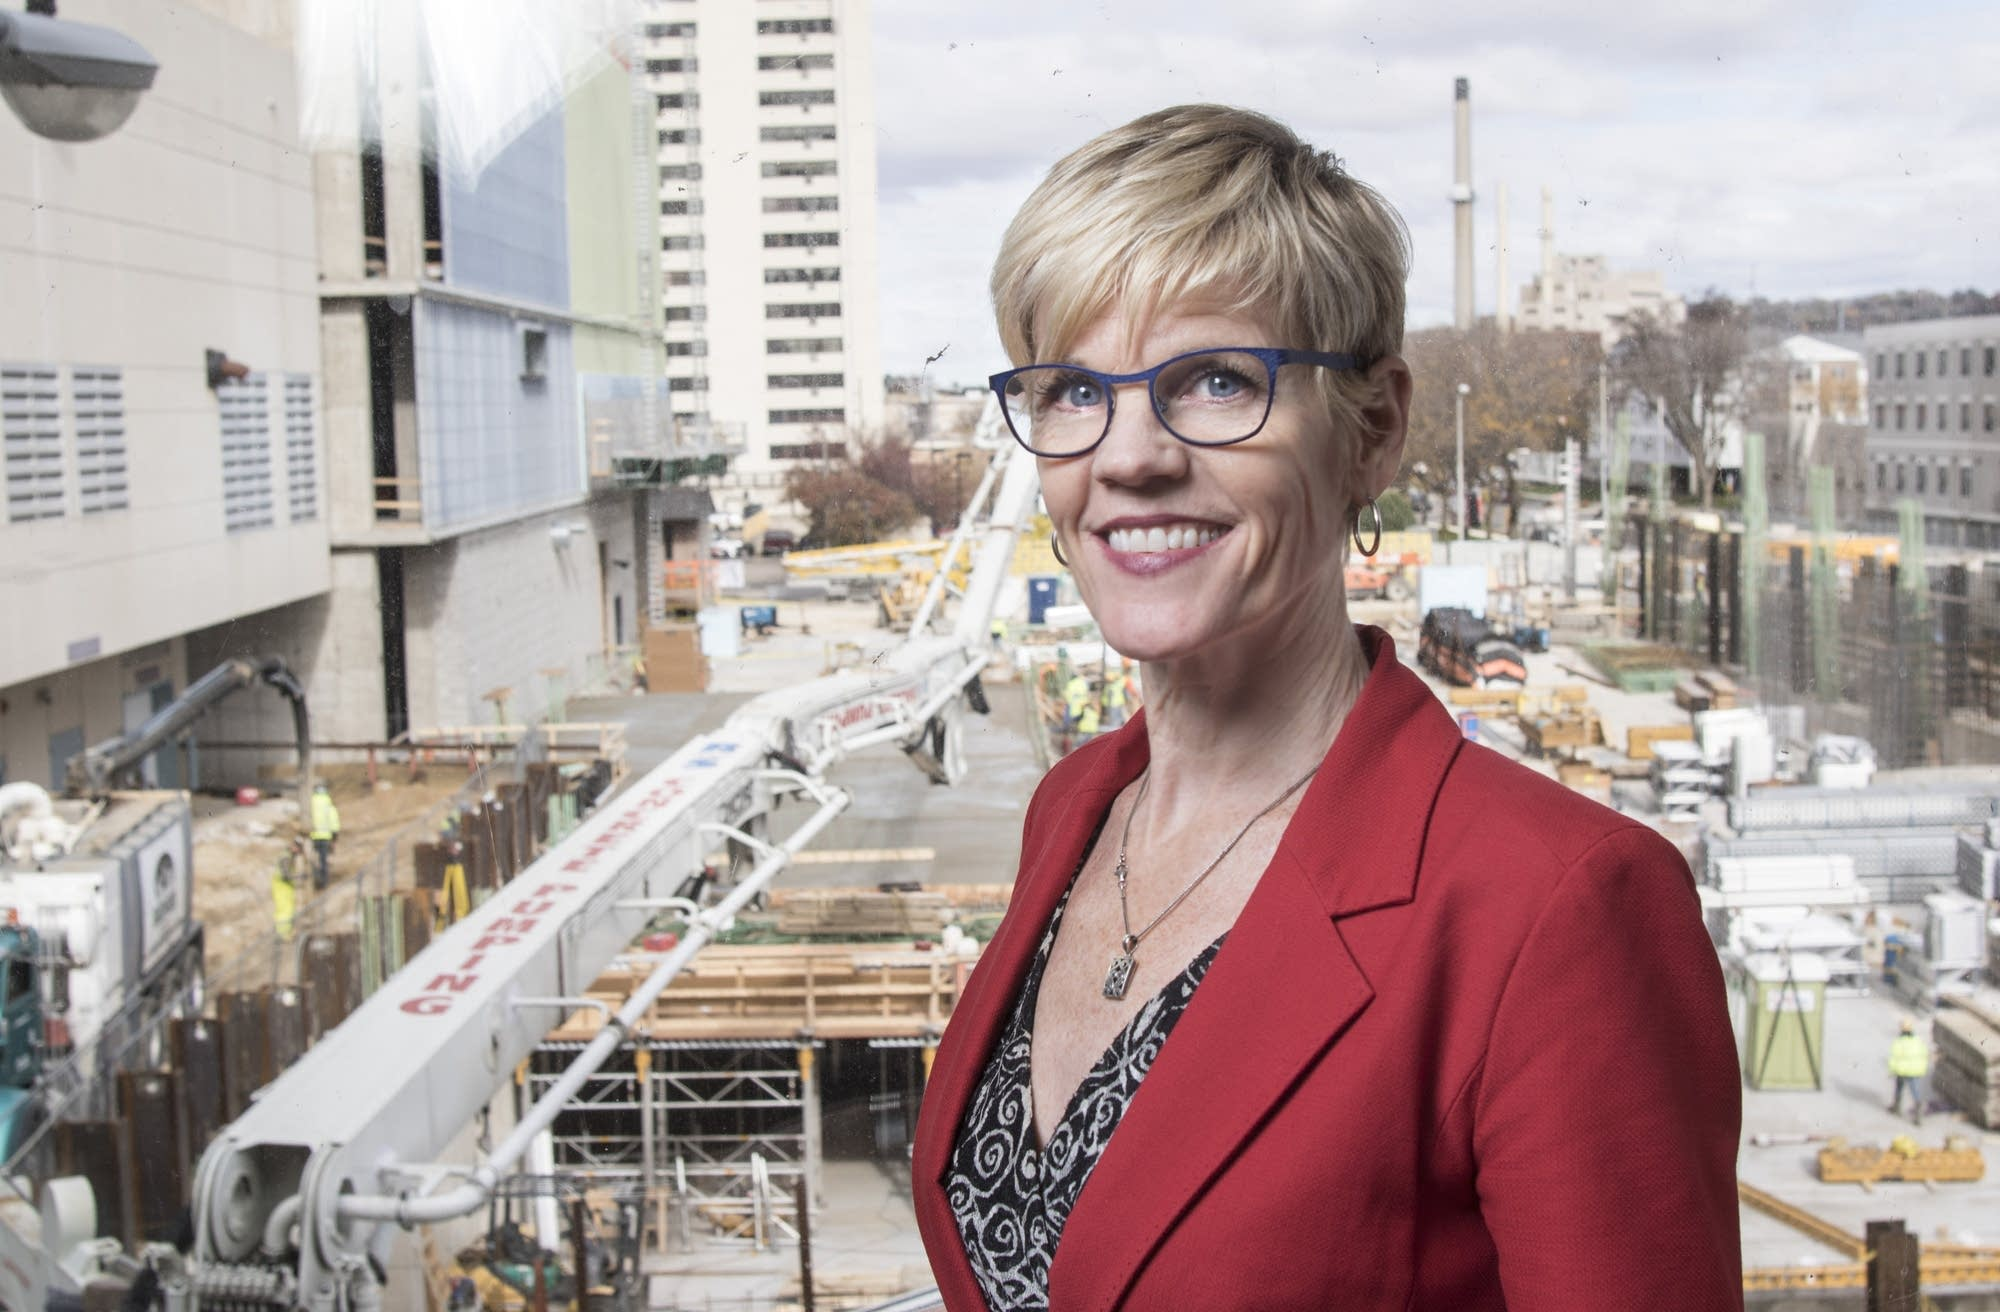 Lisa Clarke stands in a skyway overlooking Hilton Hotel construction.